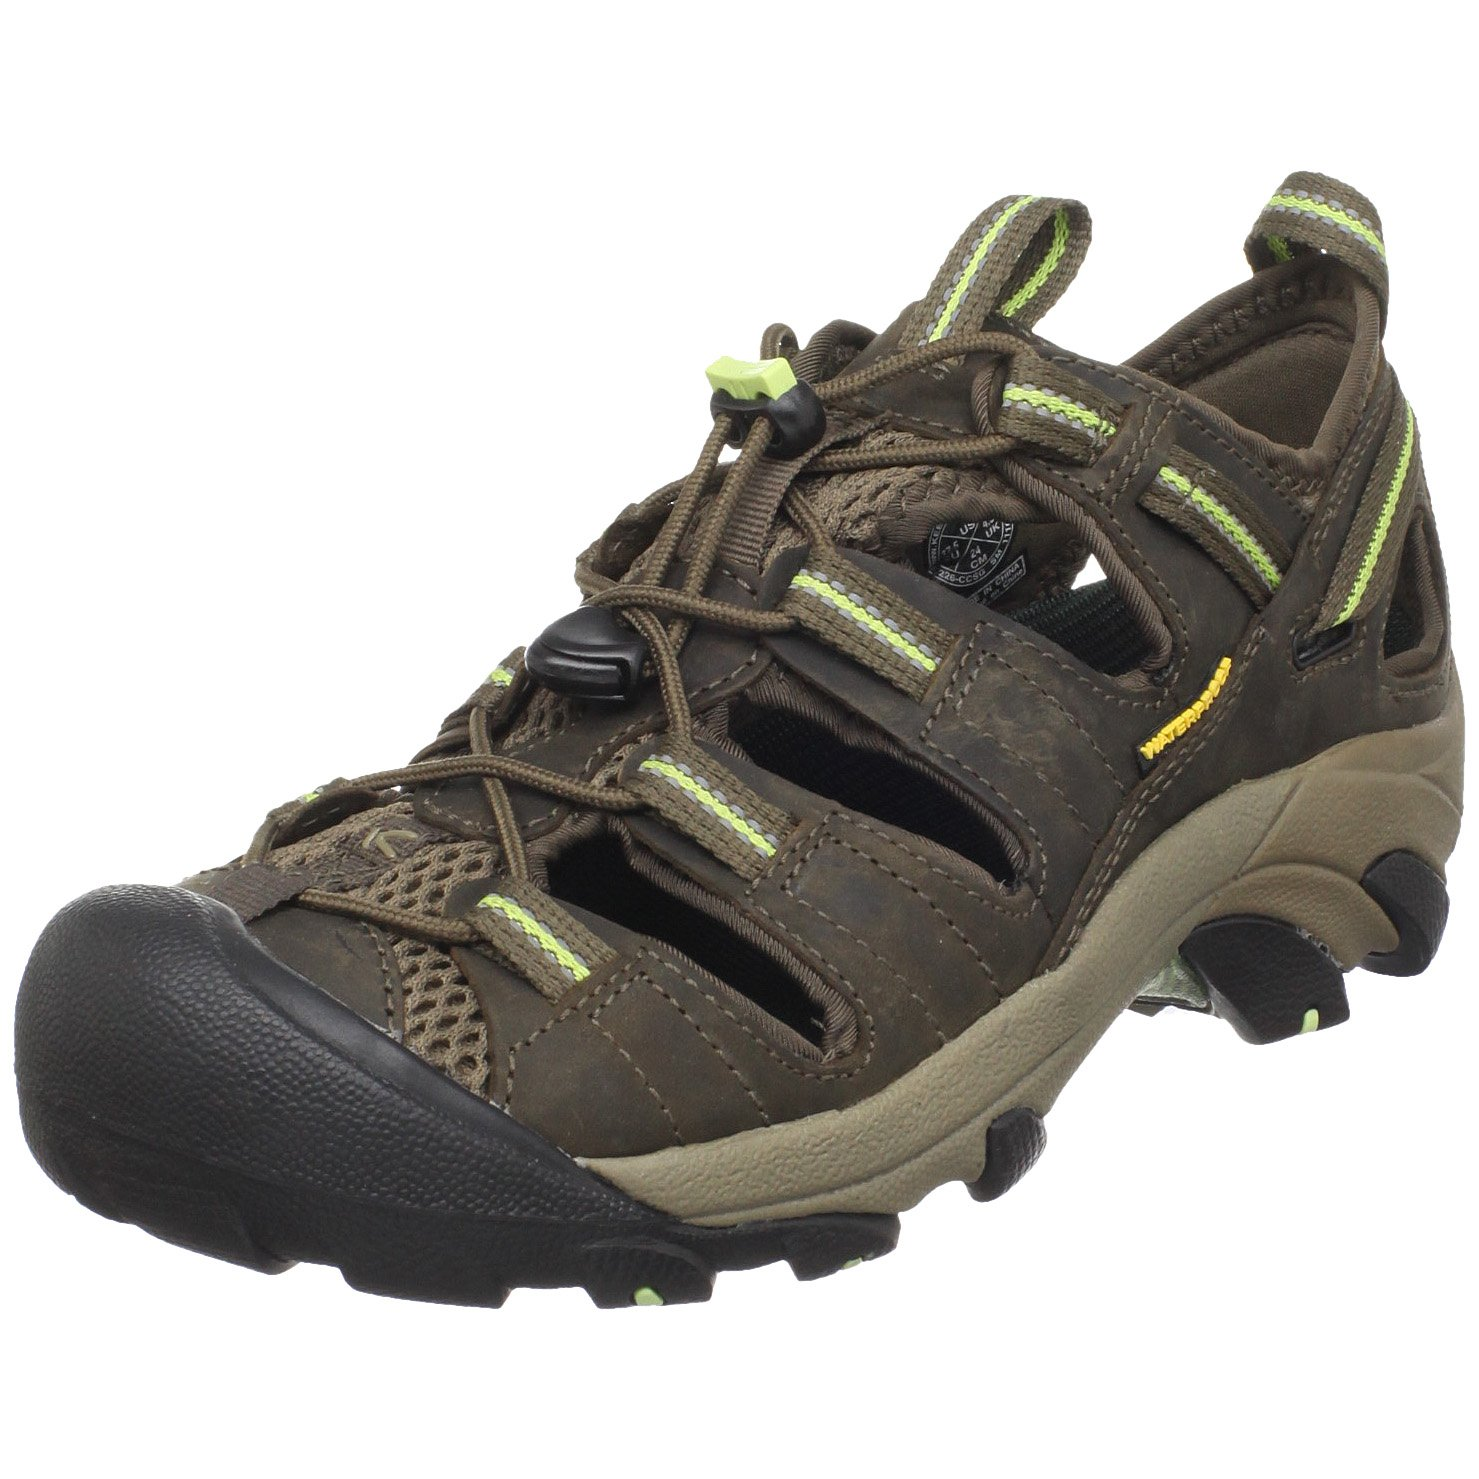 KEEN Women's Arroyo II Hiking Shoe B003Z4JTTG 10.5 B(M) US|Chocolate Chip/Sap Green